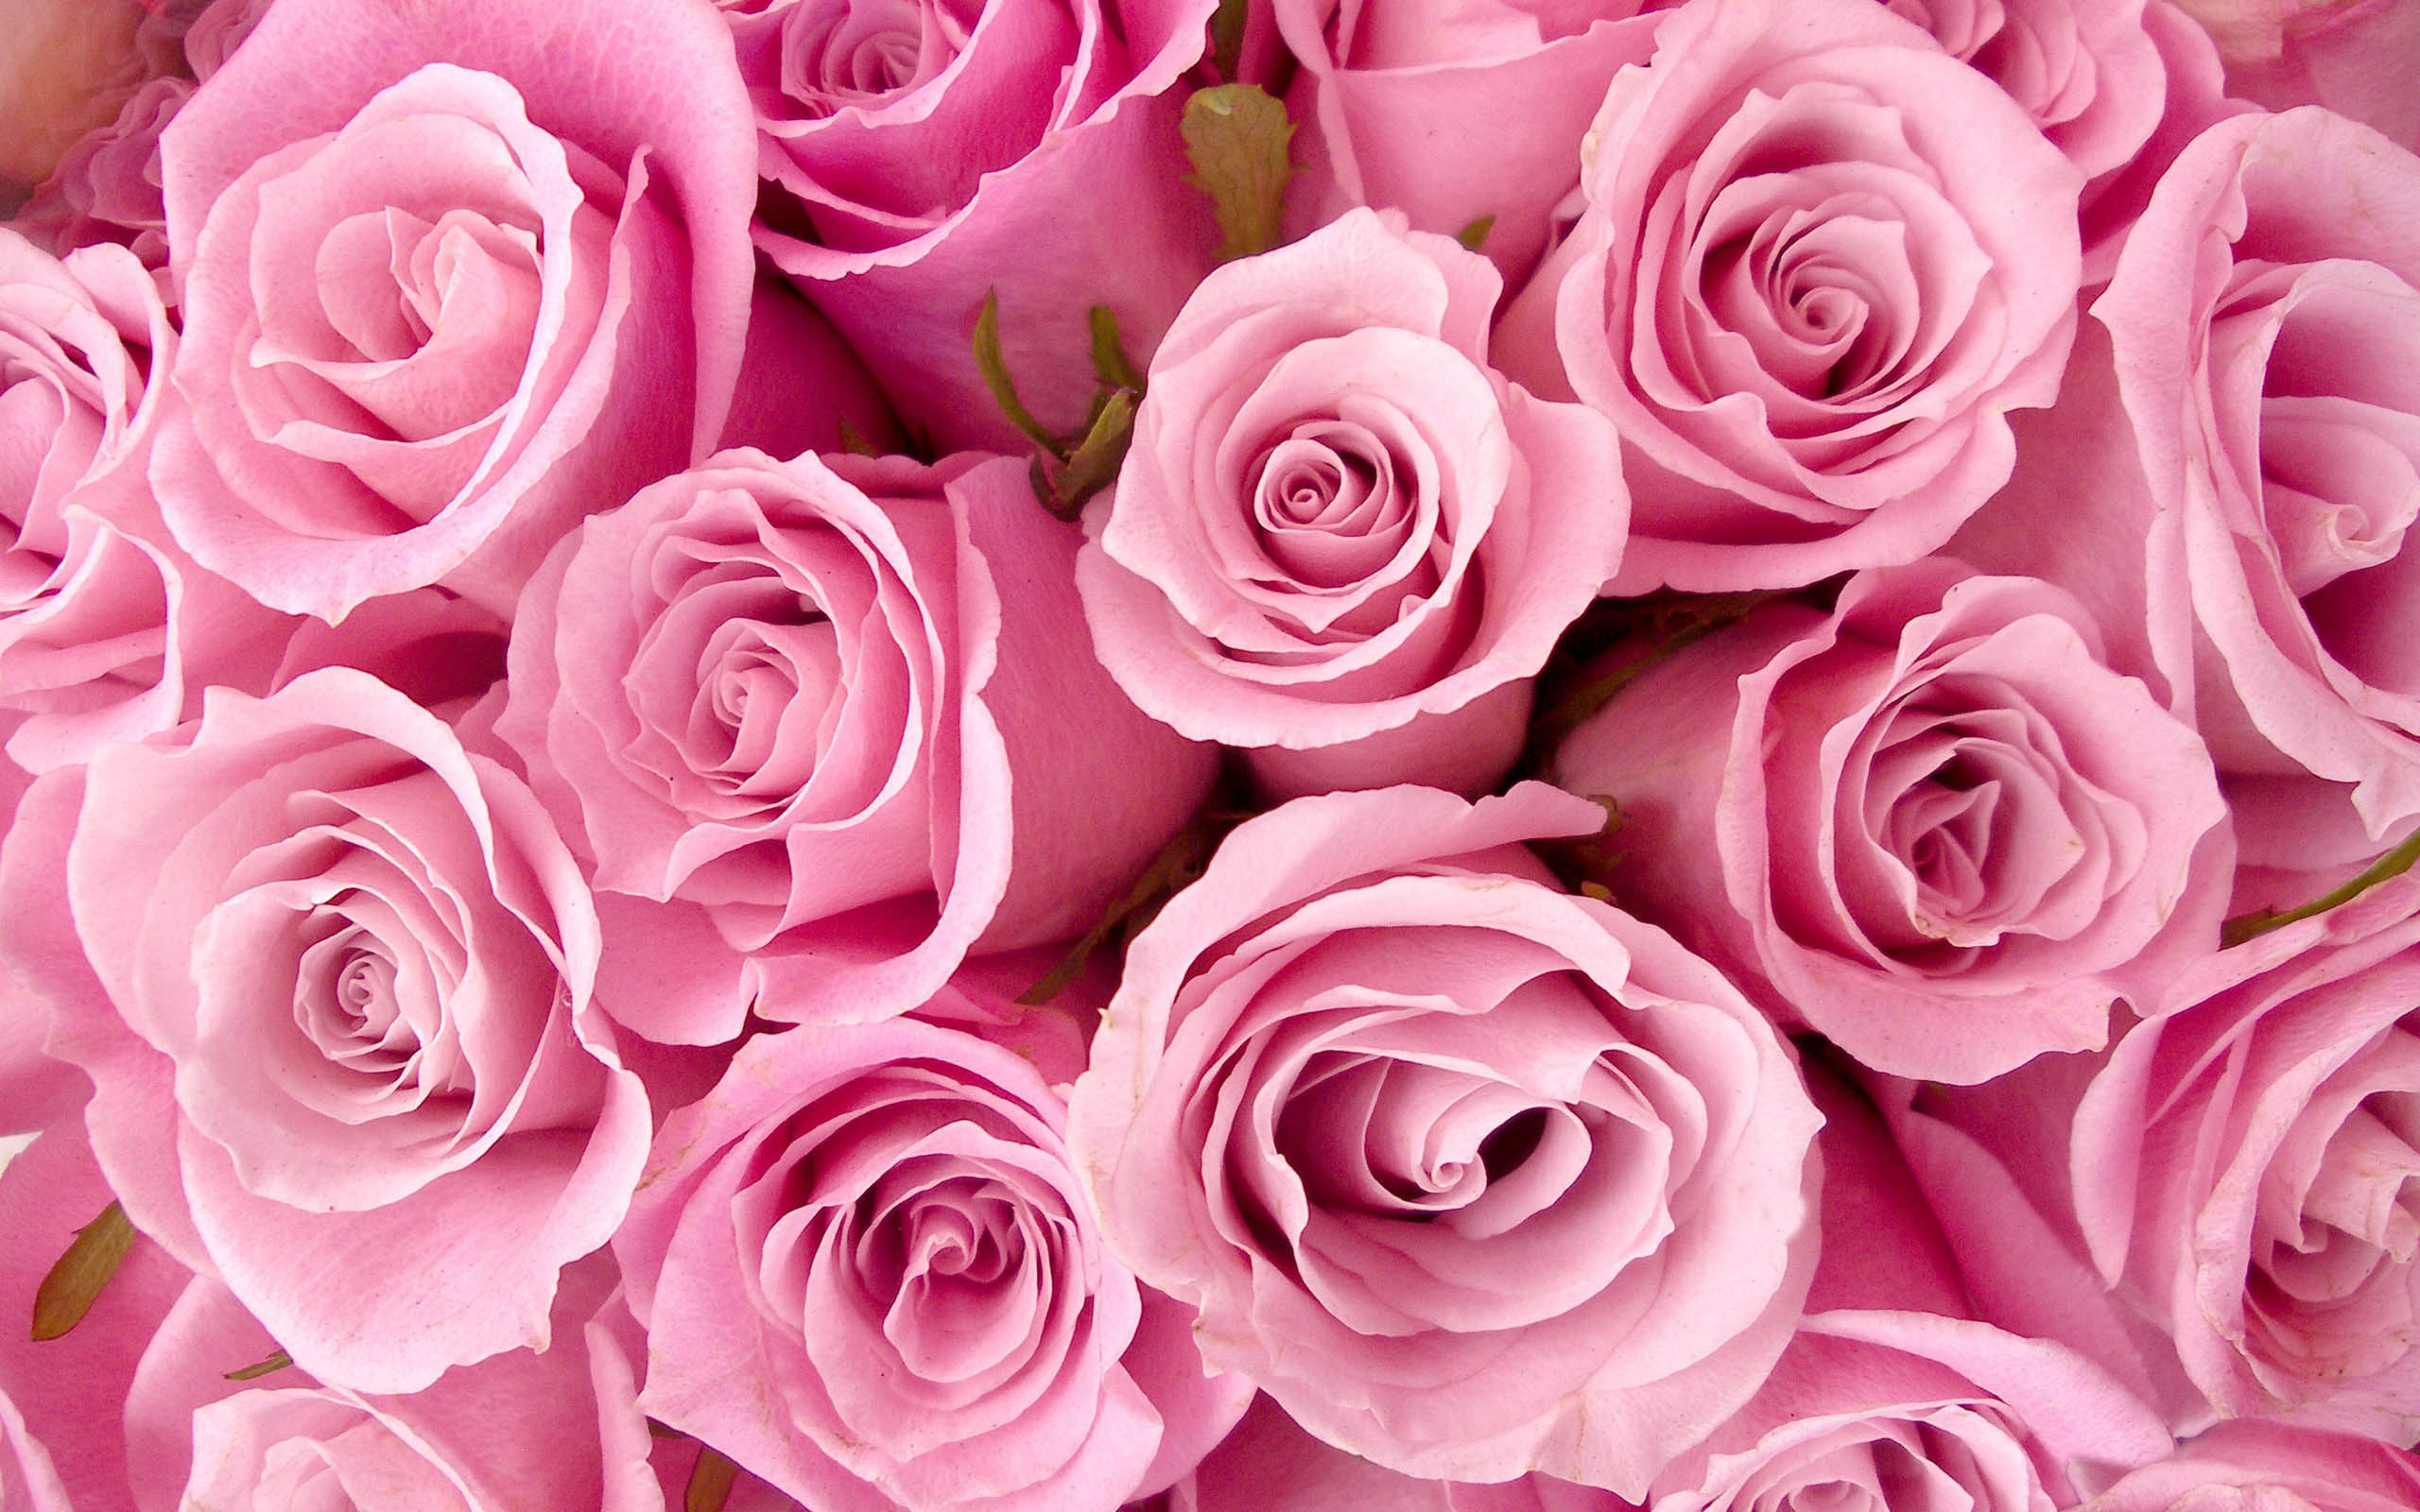 Special Pink Roses Picture for Fb Share